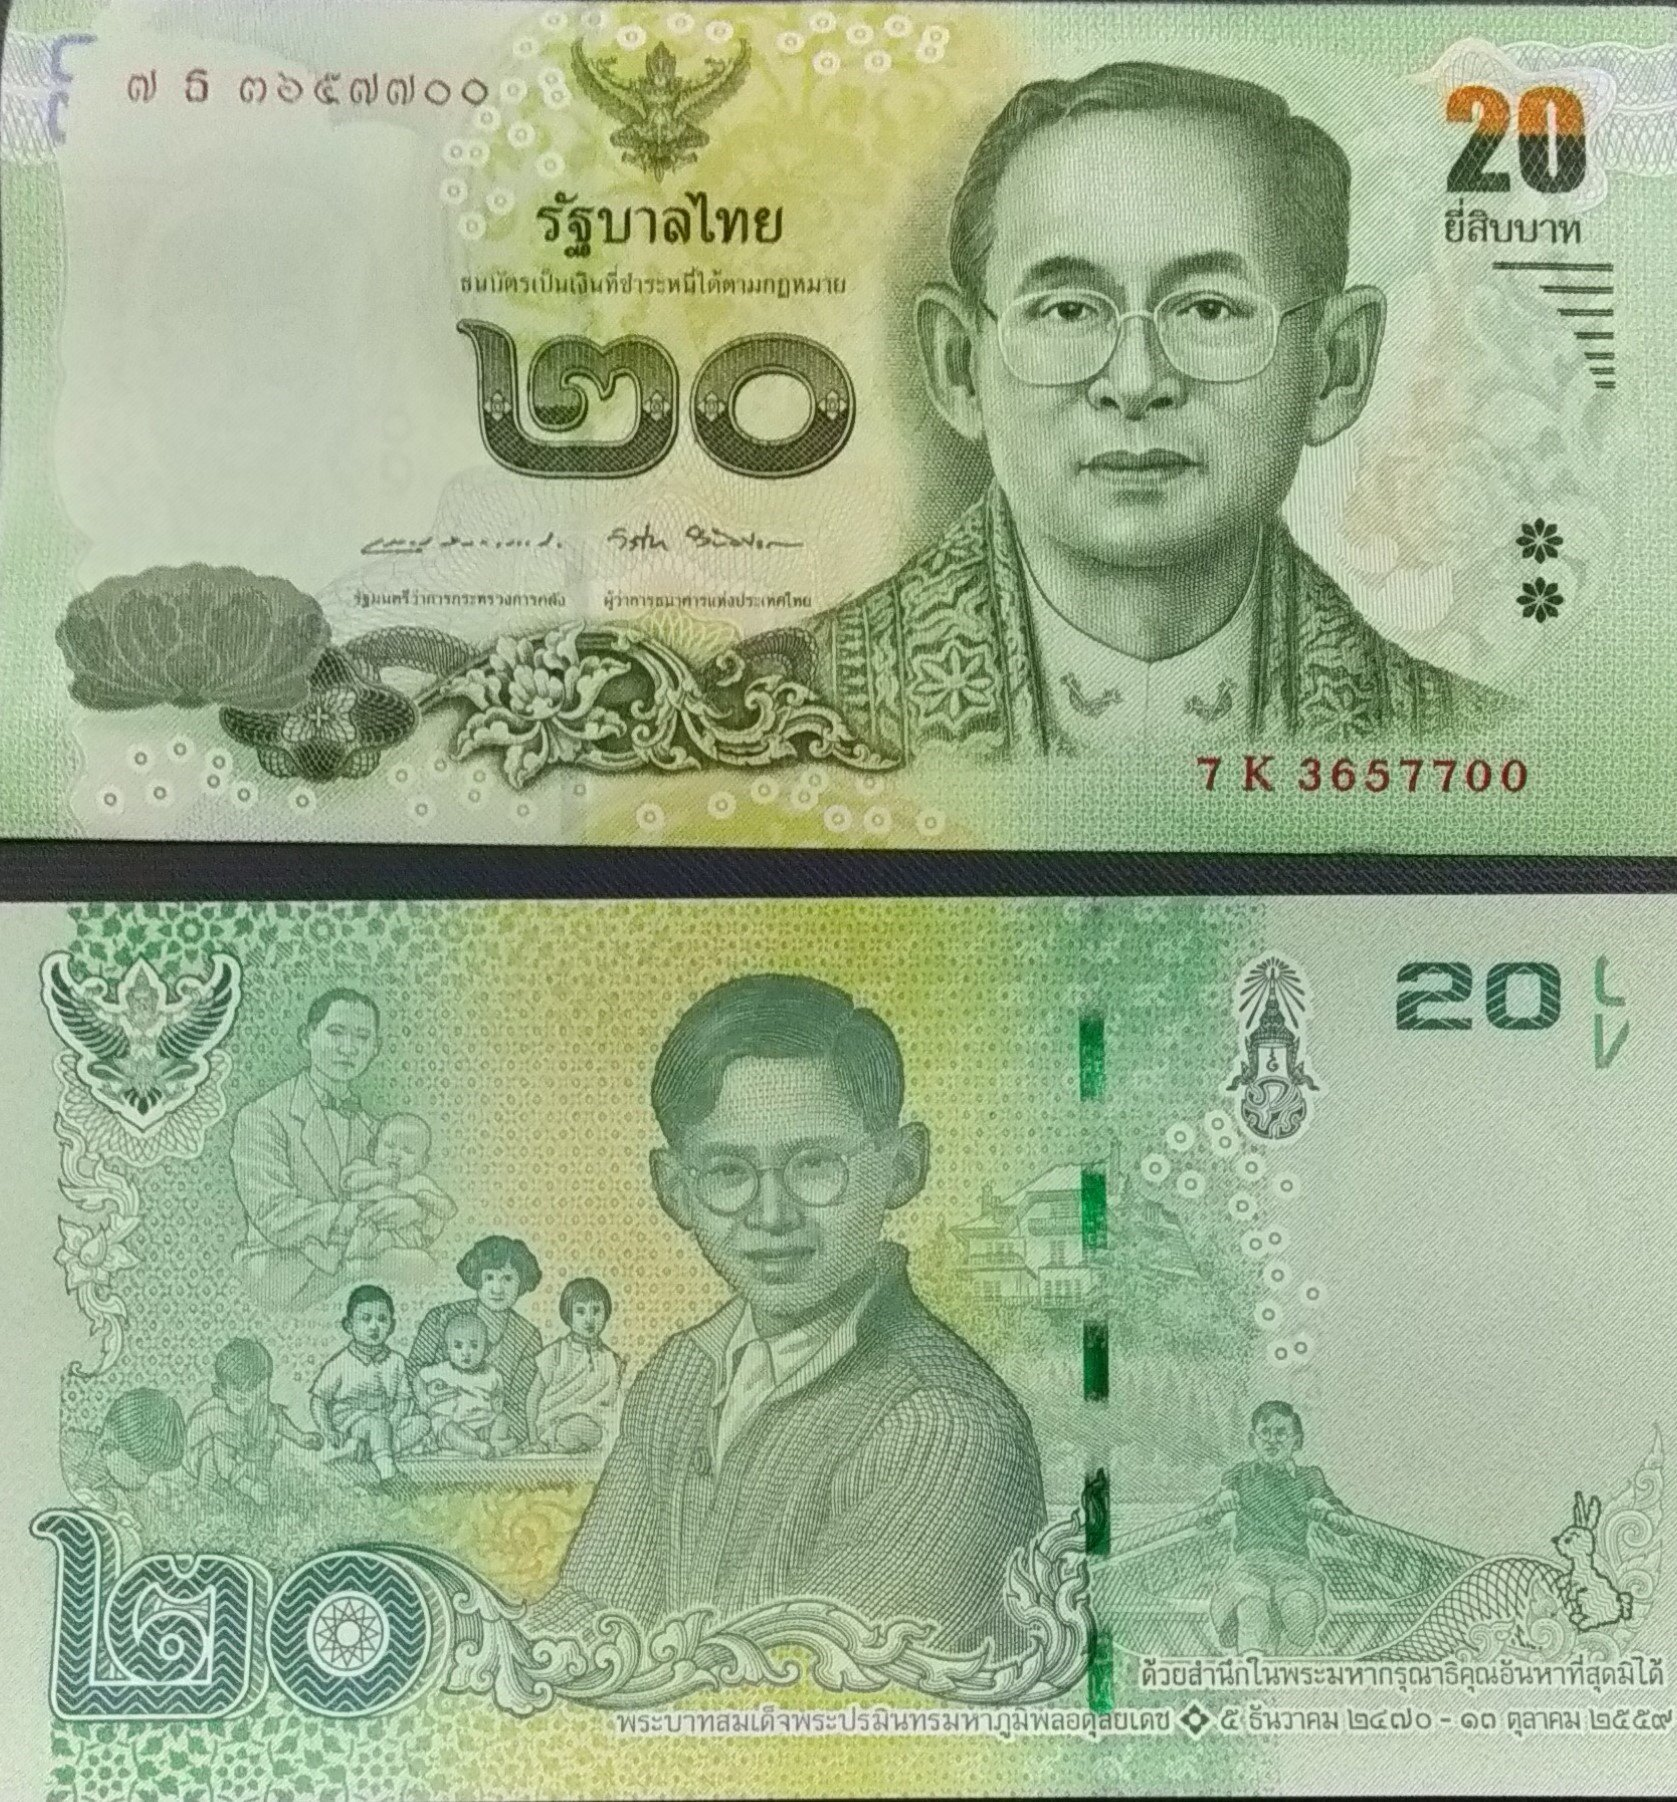 Thailand 20 baht P130 banknote for sale